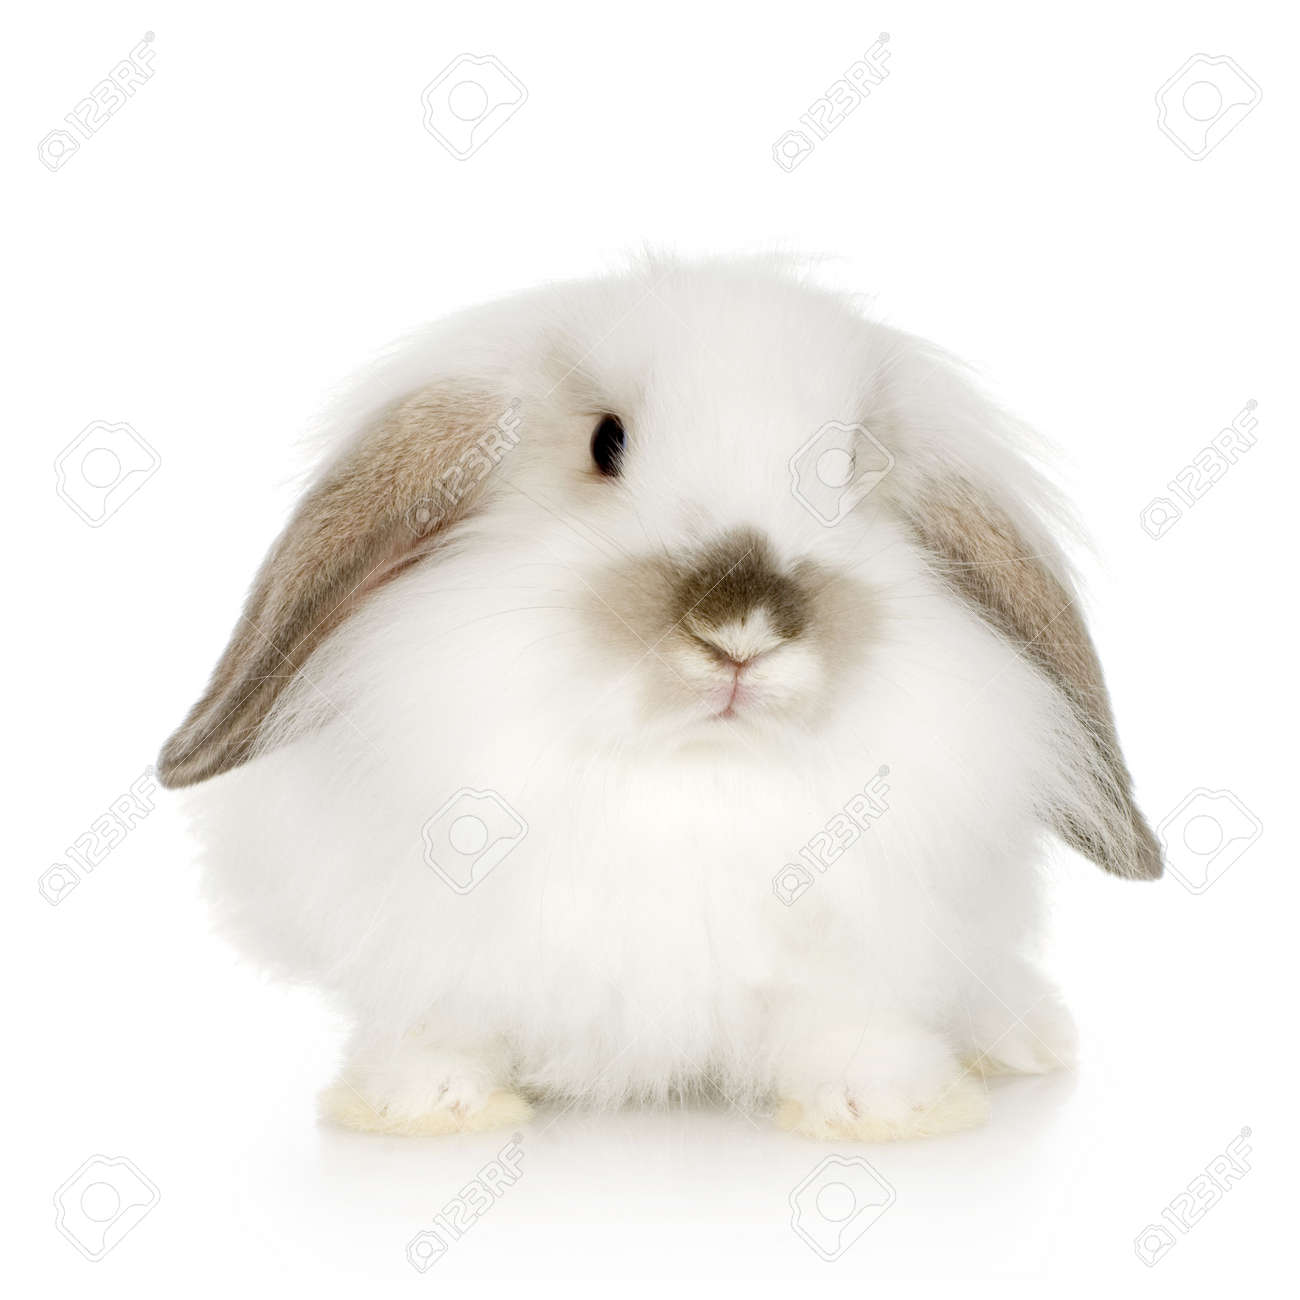 close-up on a white Lion headed lop rabbit in front of a white background and looking at the camera Stock Photo - 1288925